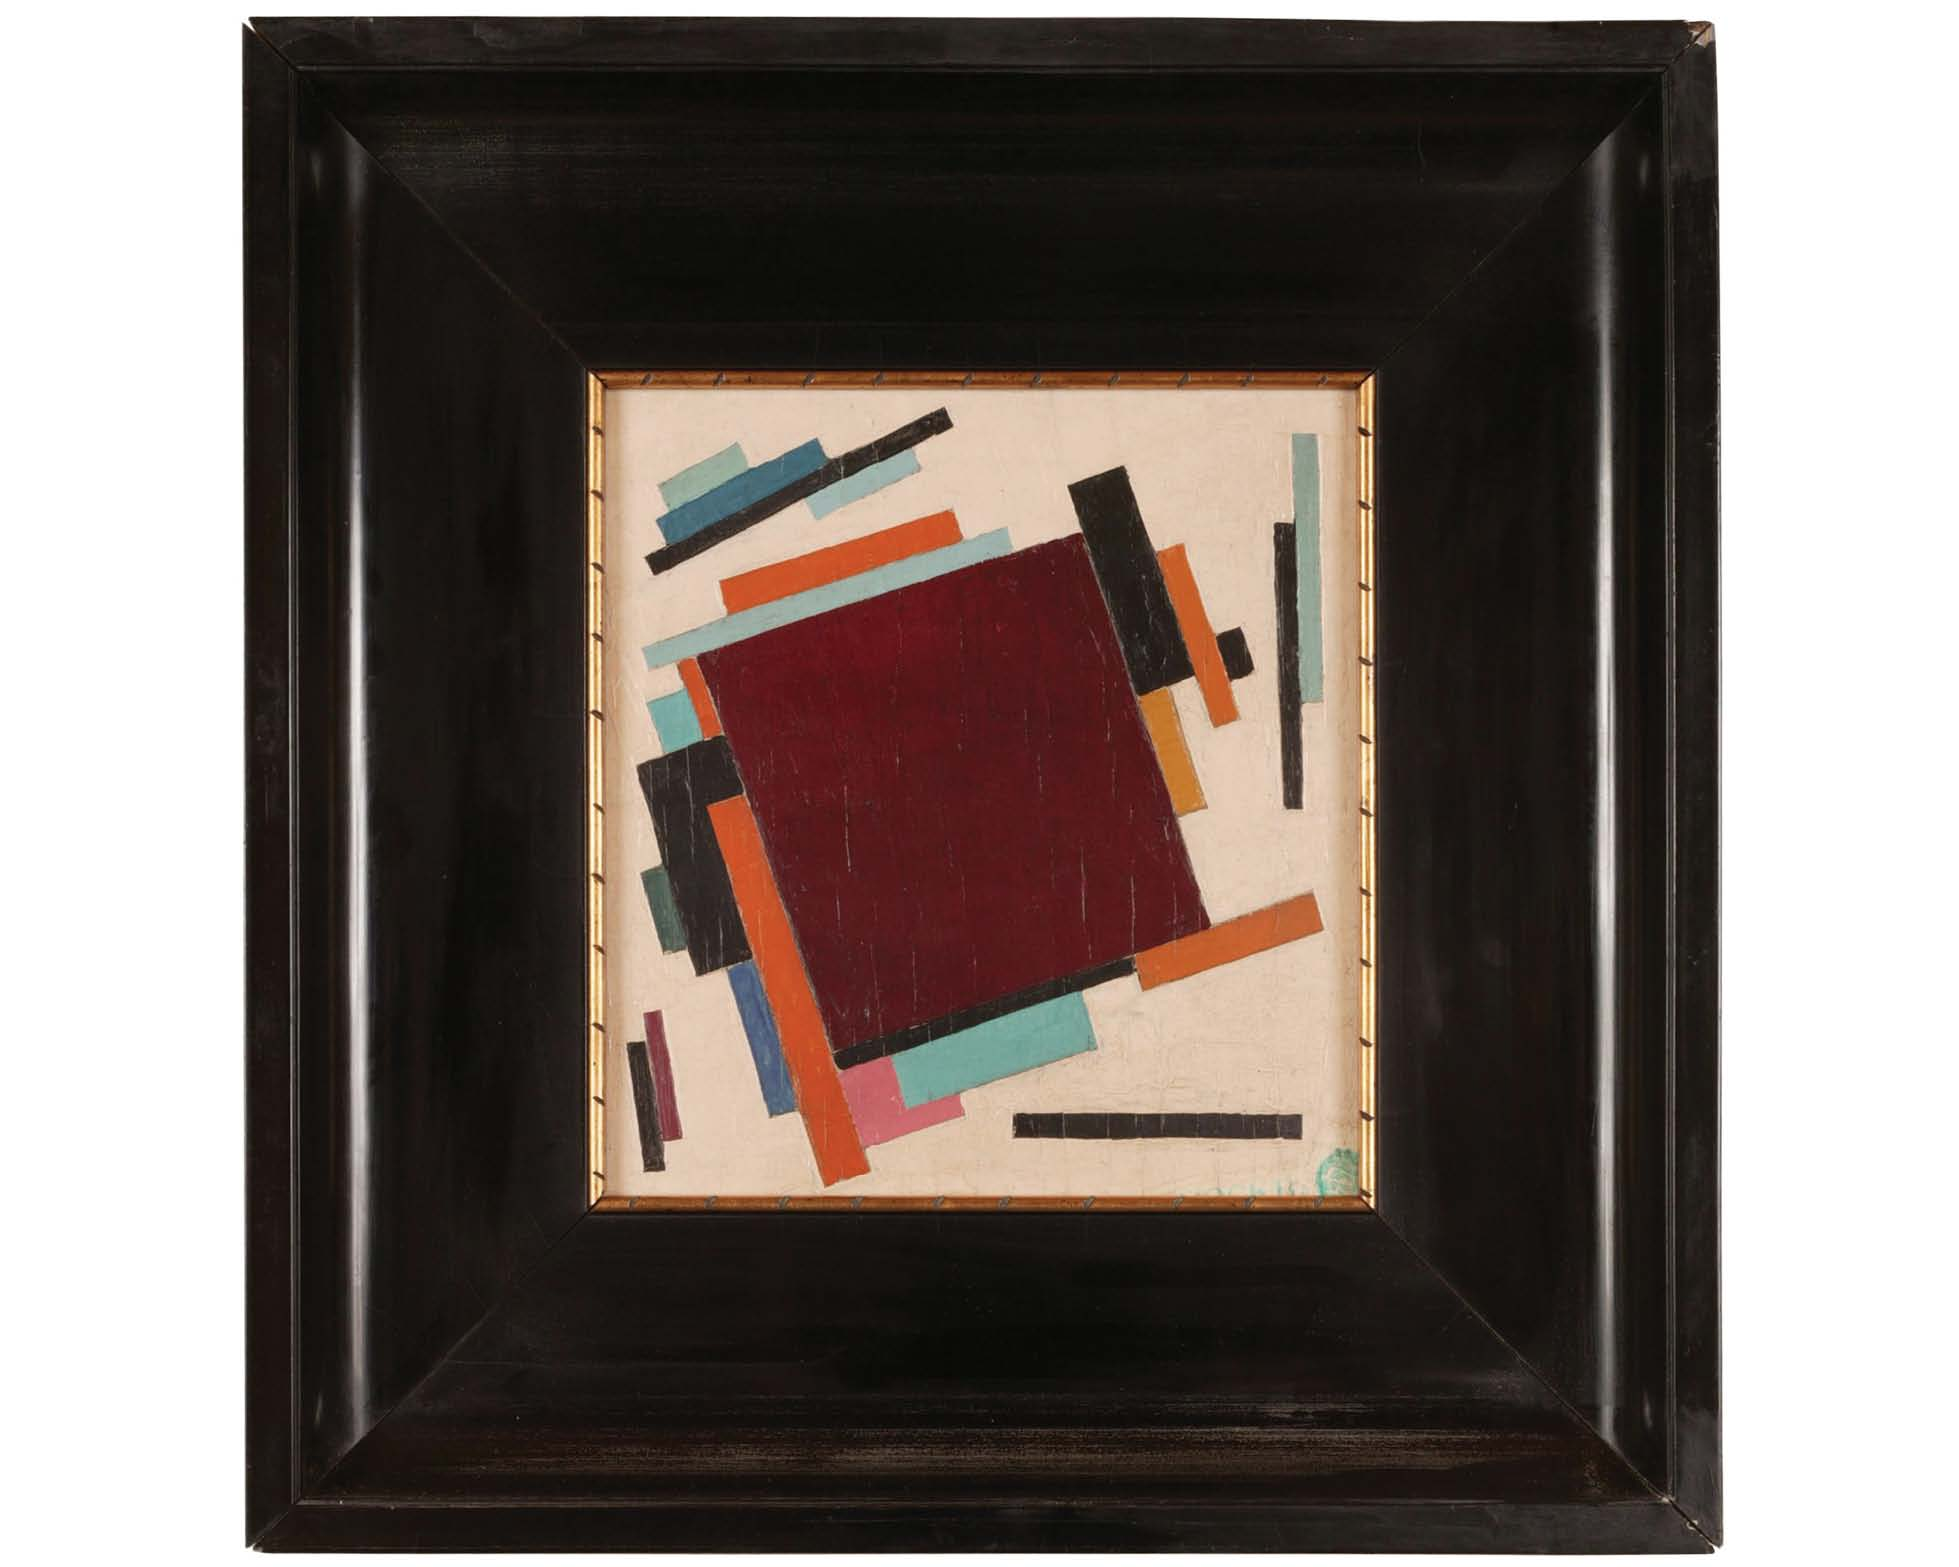 Unattributed. Unsigned. In the style of Kasimir Malevich Stamp in Russian, lower right, reads MOCKBA. Second painting on reverse depicting interior of room. Oil on plywood. 28 x 28 cm.